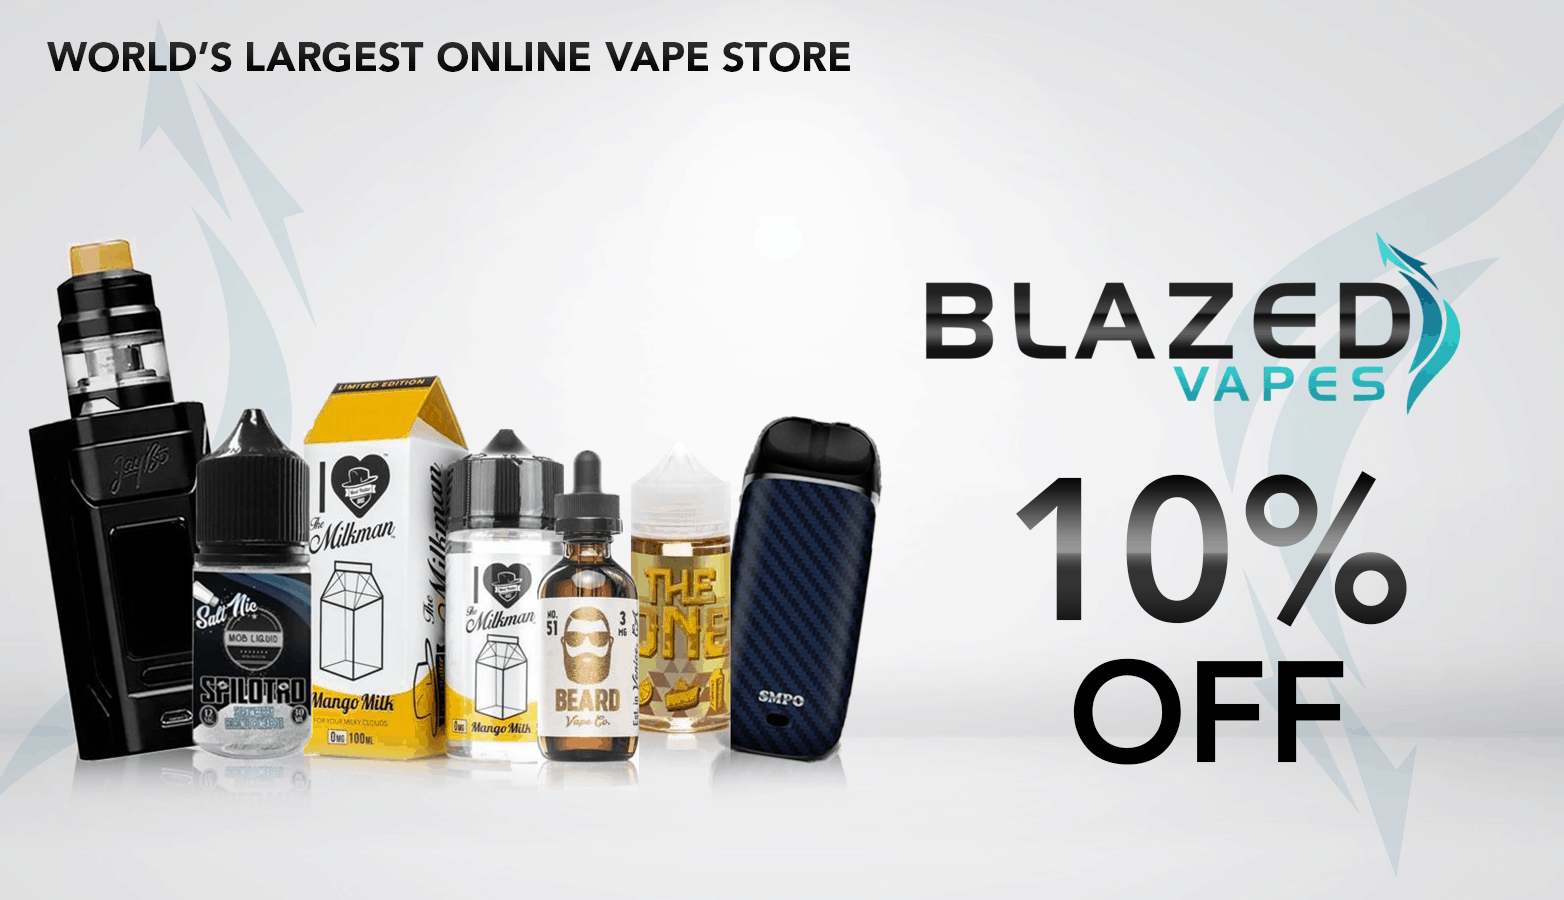 Blazed Vapes Coupon Code Online Discount Save On Cannabis Website